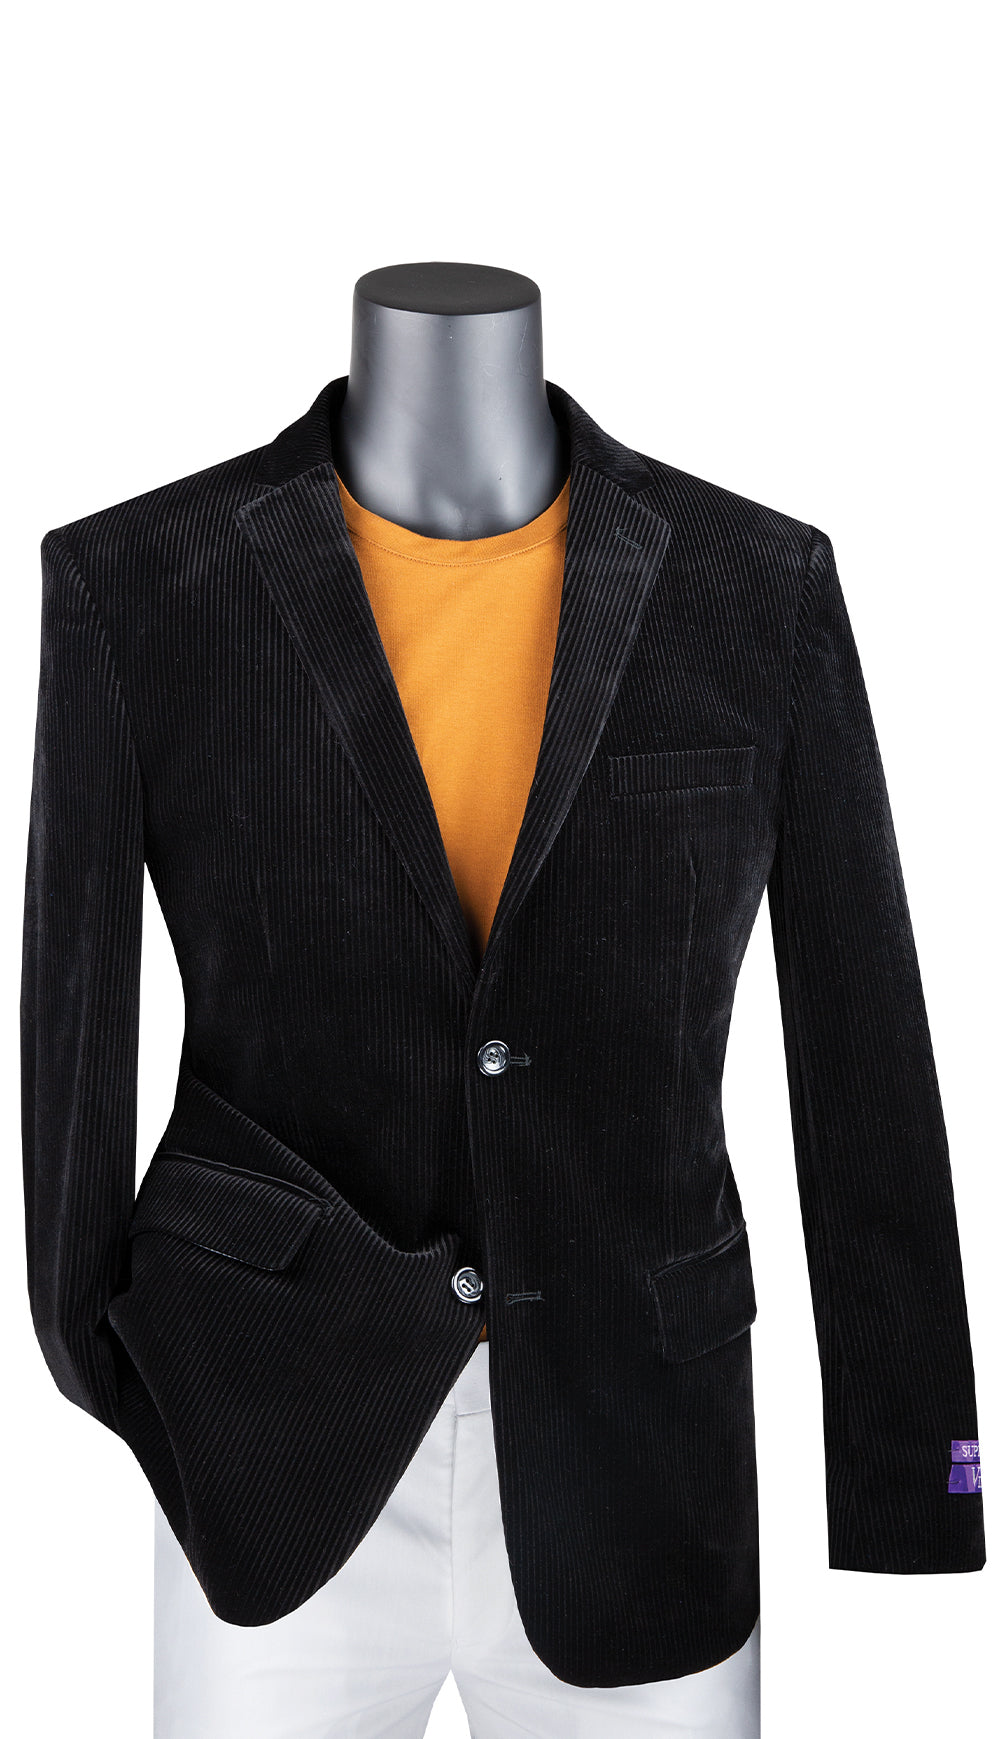 Vinci Sport Coat BCORD-1-Black - Church Suits For Less